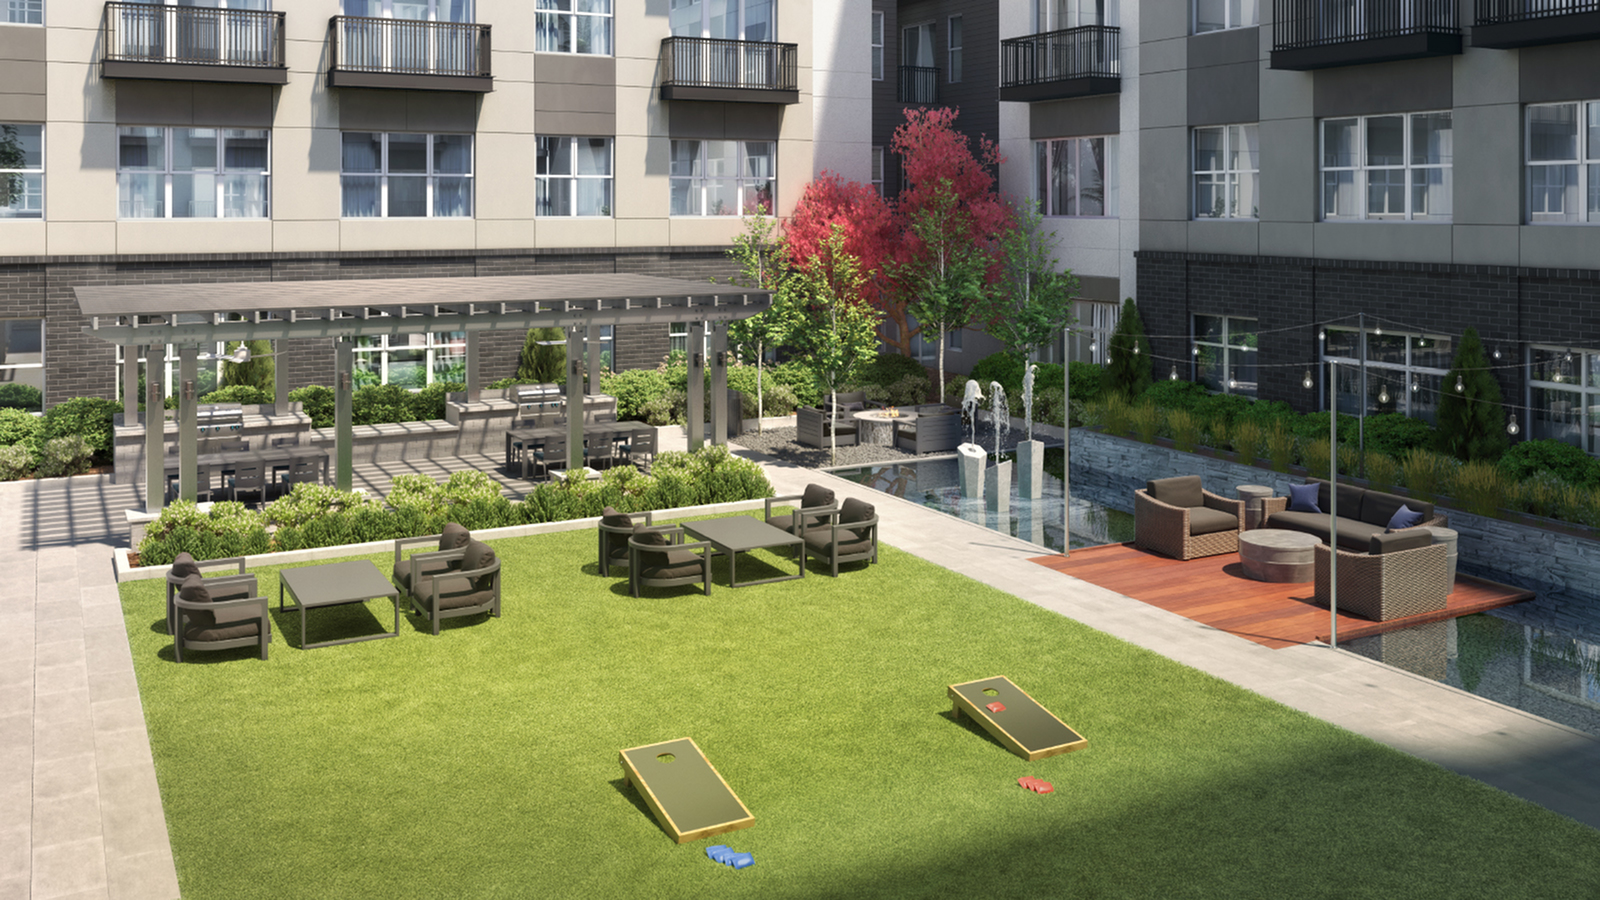 Outdoor Fountain Feature, Wood Decks with Lounge Seating, and Outdoor TVs